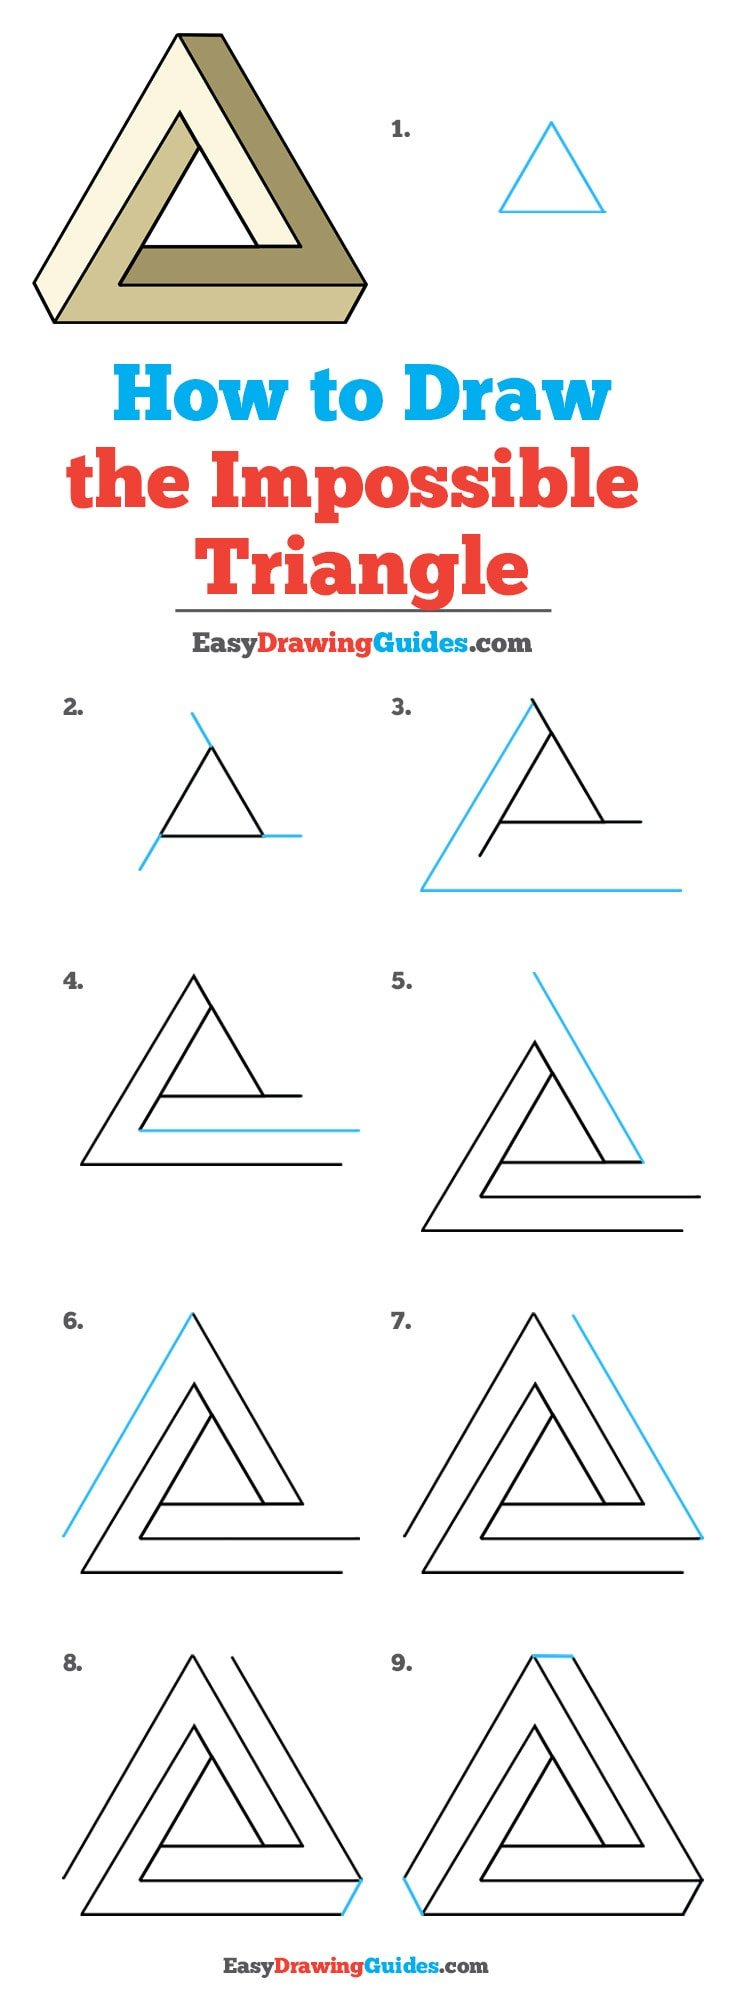 How to Draw Impossible Triangle